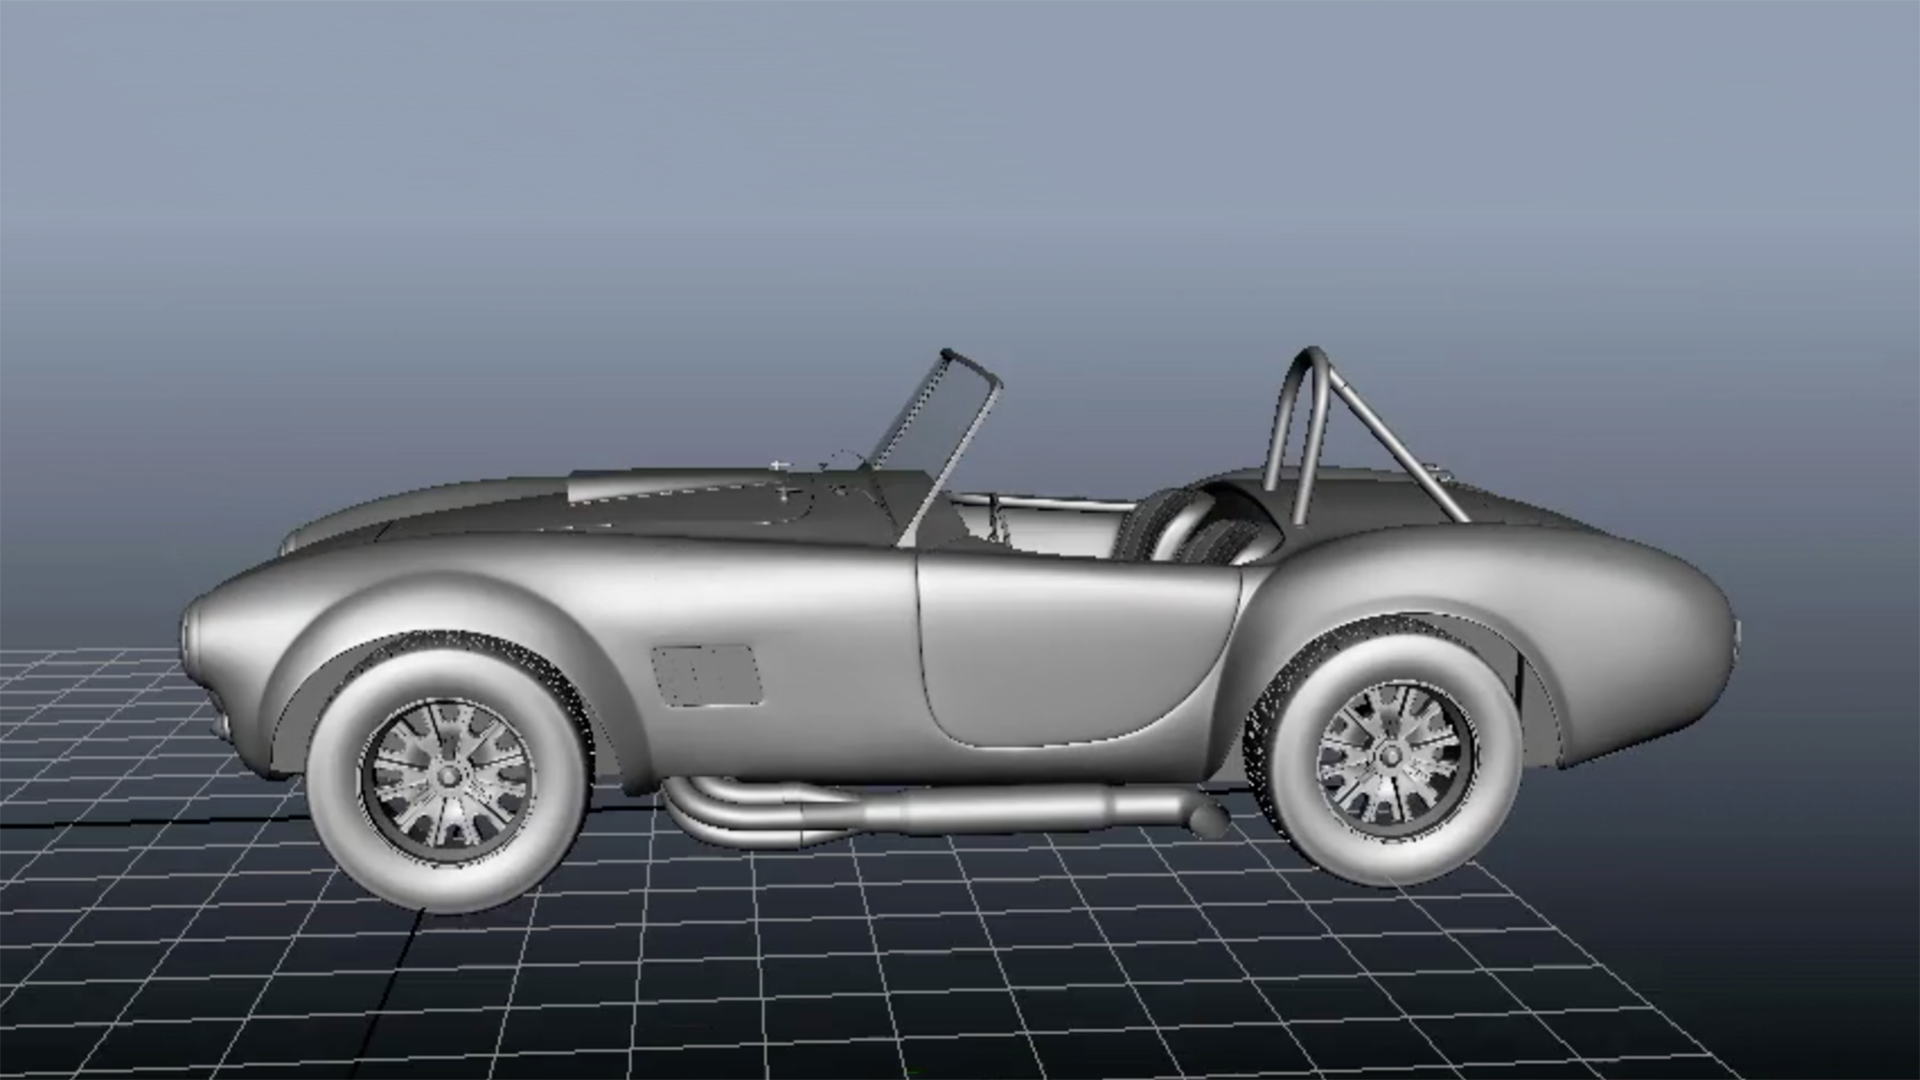 car design software car designing software 3d car 3d design online Lynda.com